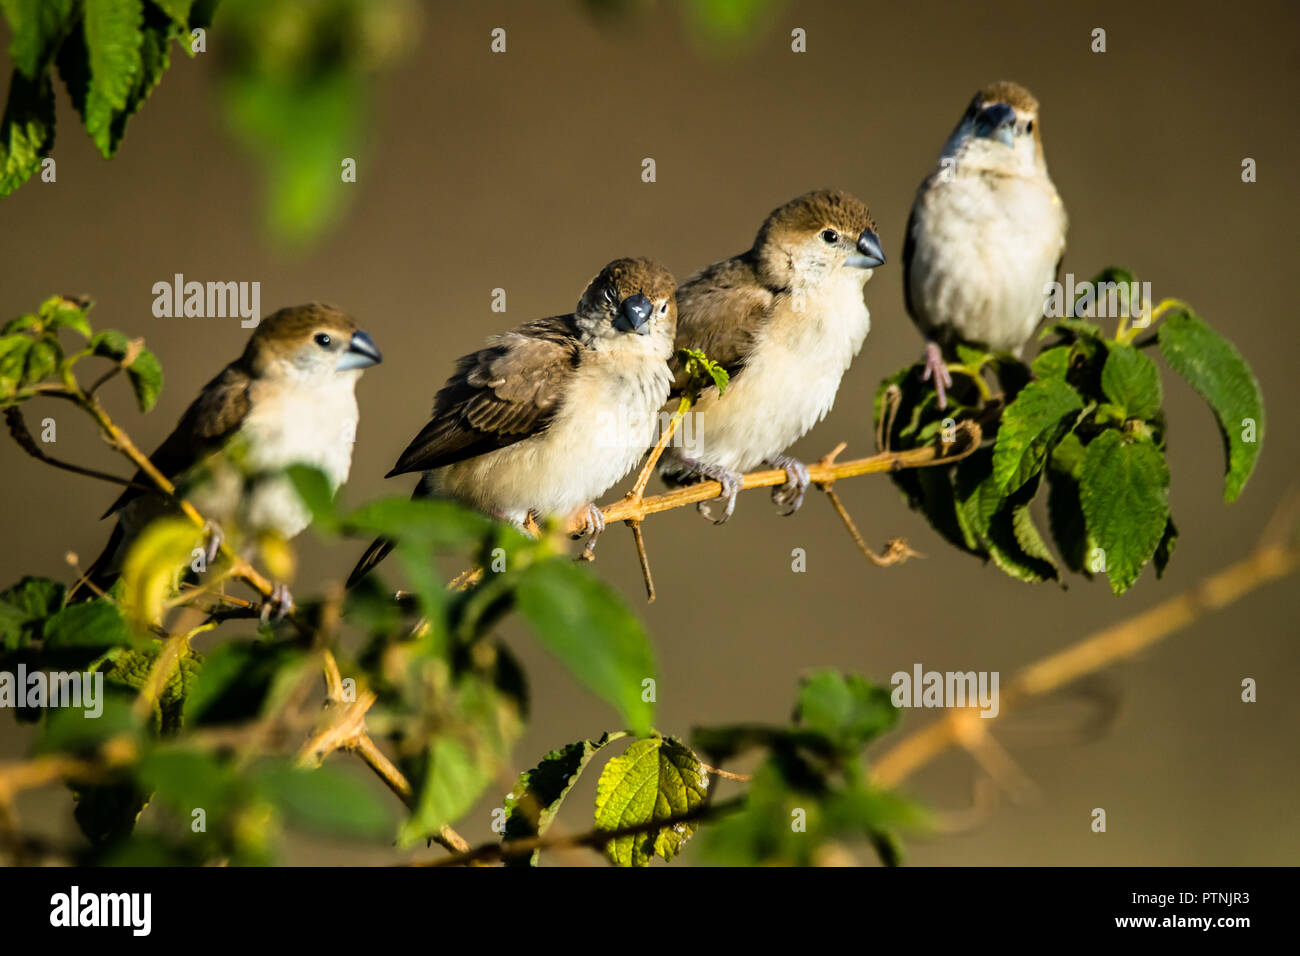 The Indian silverbill or white-throated munia (Euodice malabarica) is a small passerine bird found in the Indian Subcontinent and adjoining regions. - Stock Image